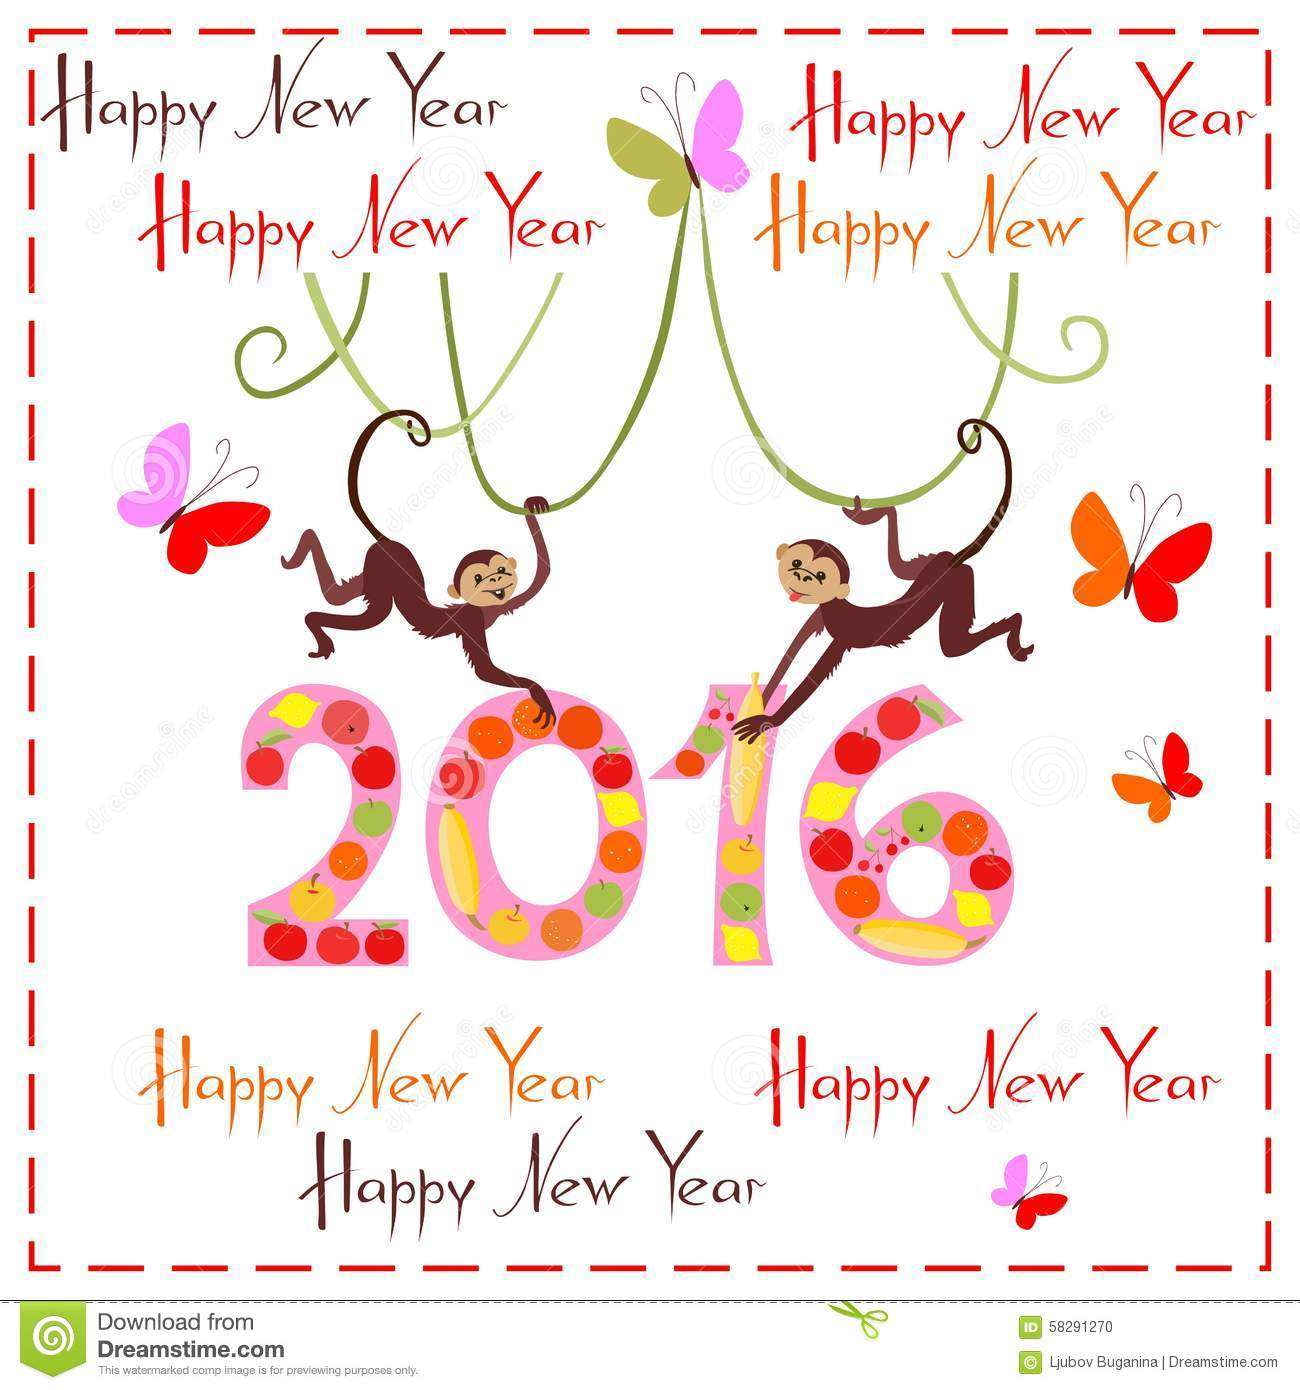 Happy New Year Greeting Card With Cute Monkeys